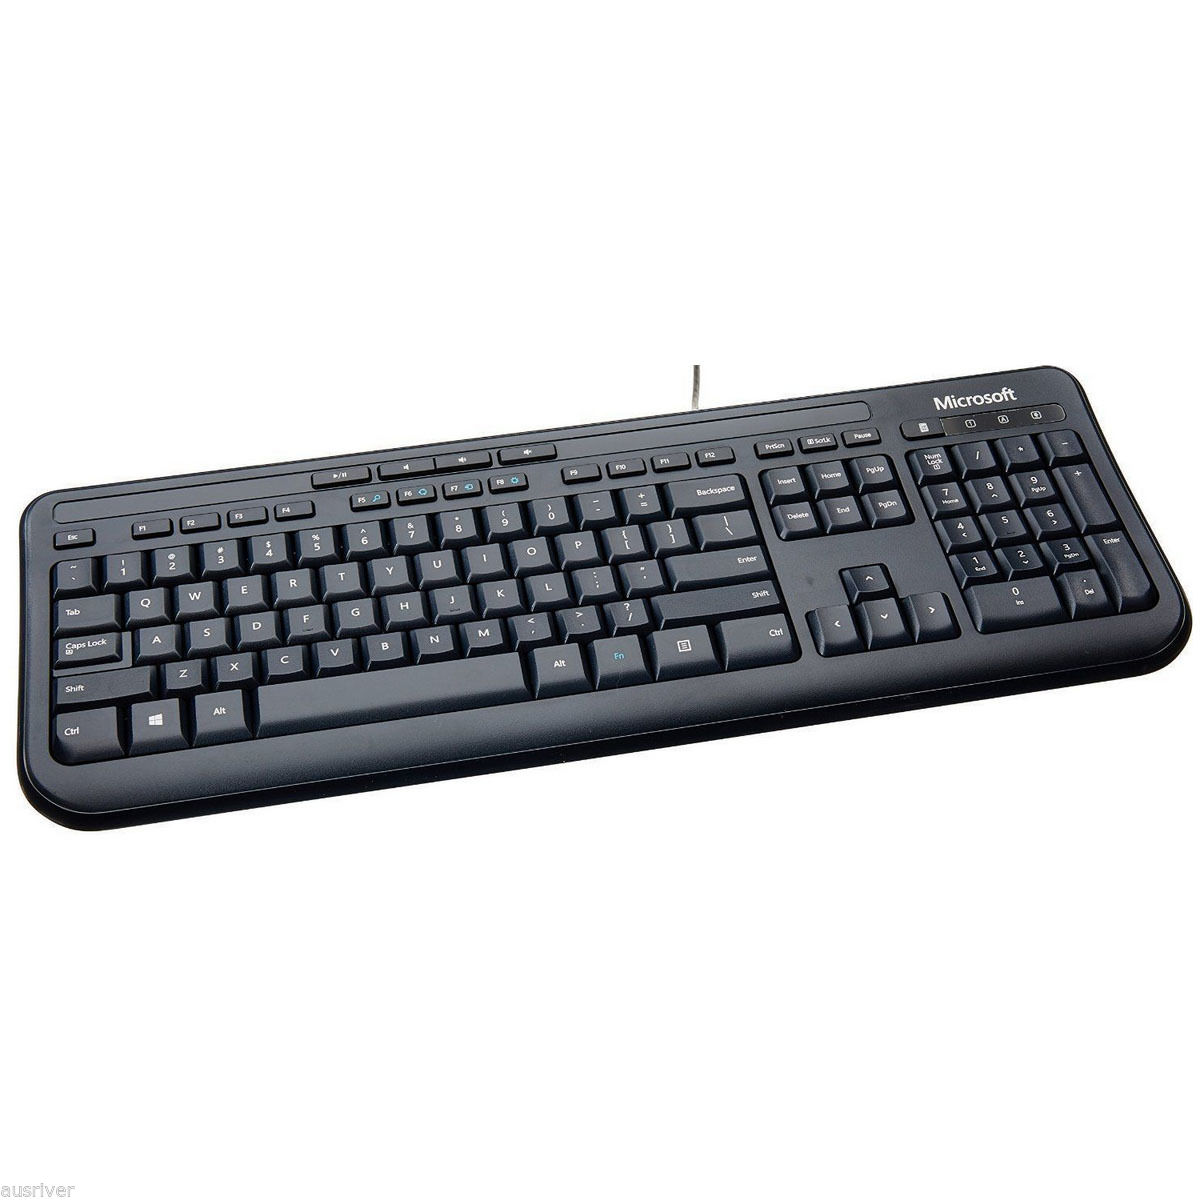 microsoft wired desktop 600 usb membrane standard keyboard and mouse combo 882224742146 ebay. Black Bedroom Furniture Sets. Home Design Ideas